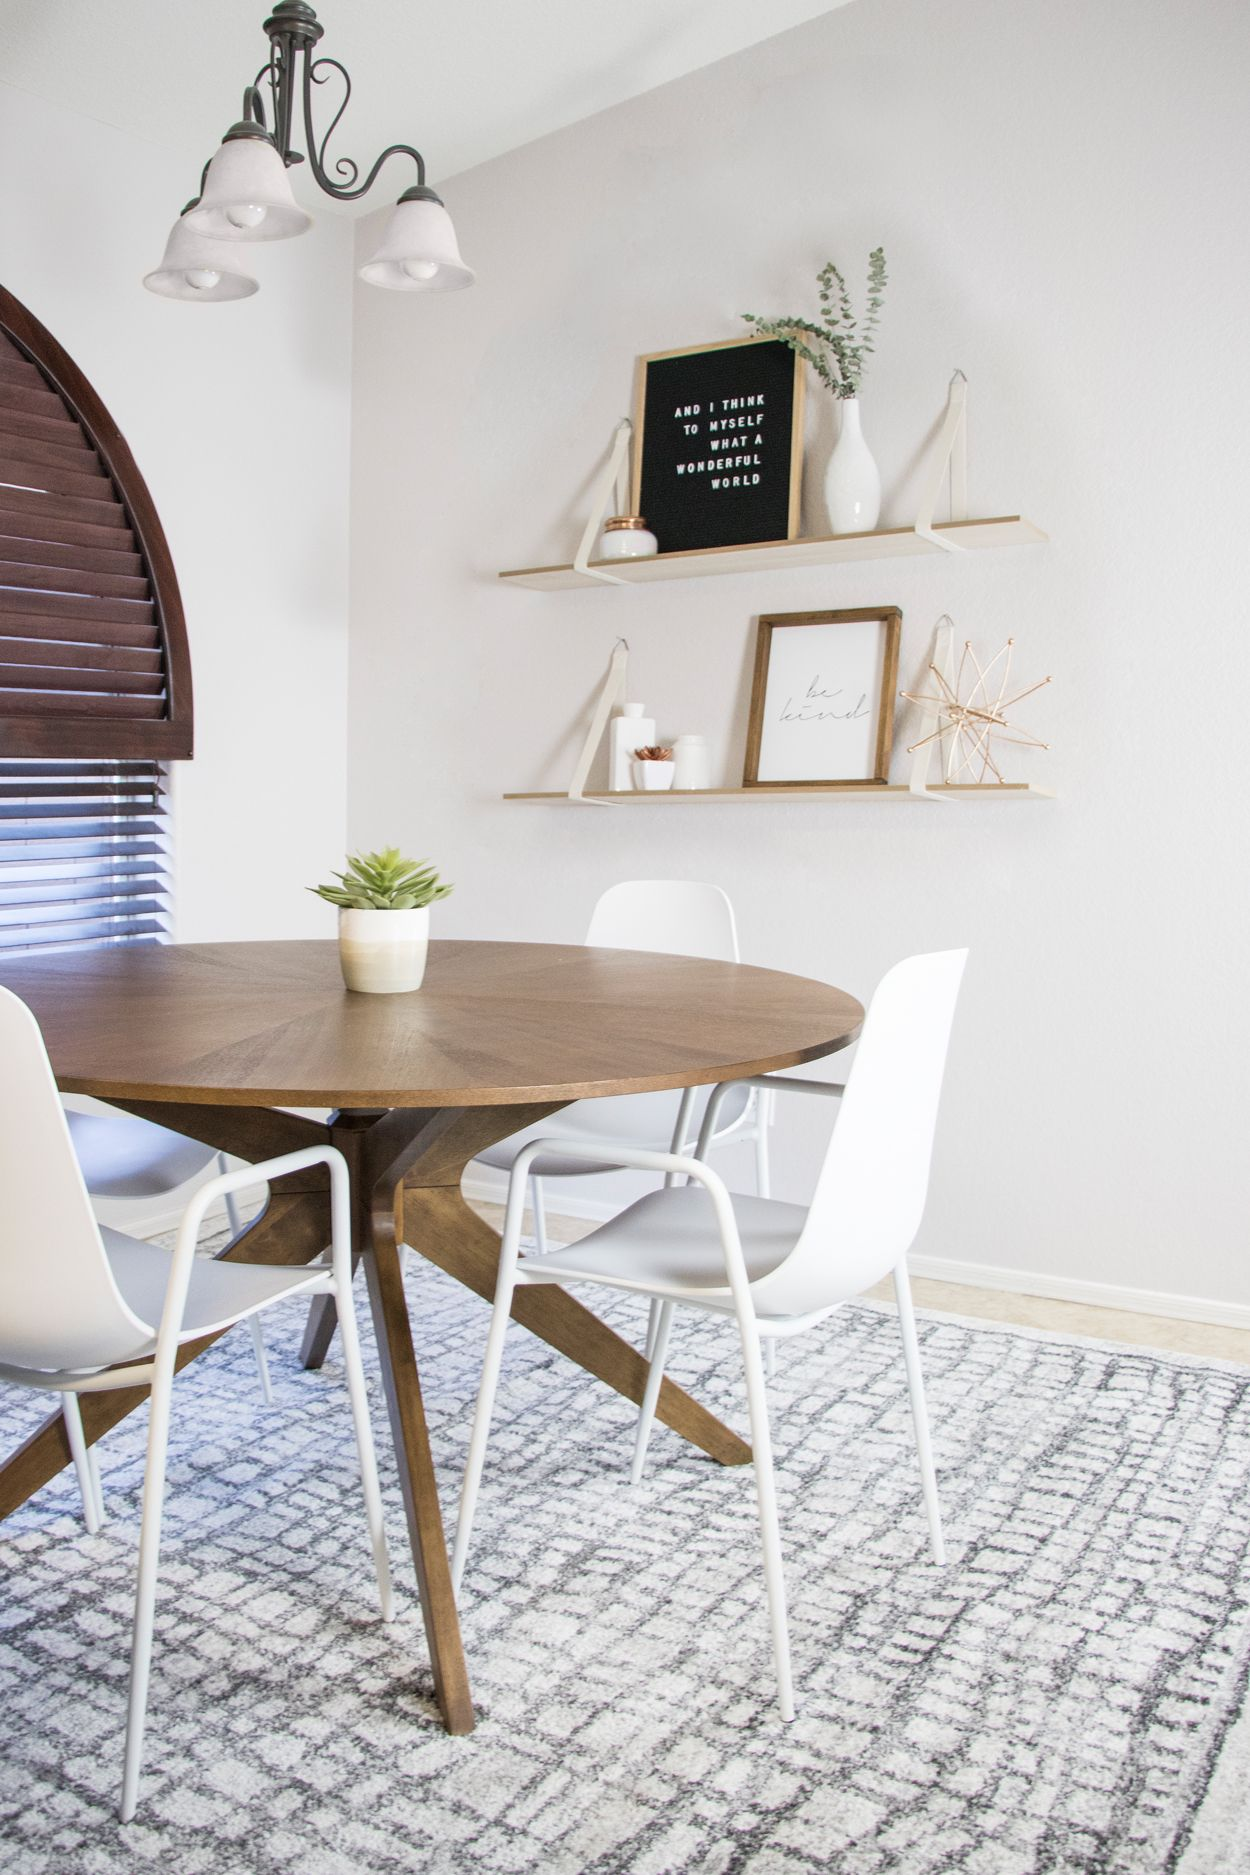 Luxurious and versatile make up the characteristics of the conan dining table a stunning sunburst wood veneer top adds glamour while its dynamic centered